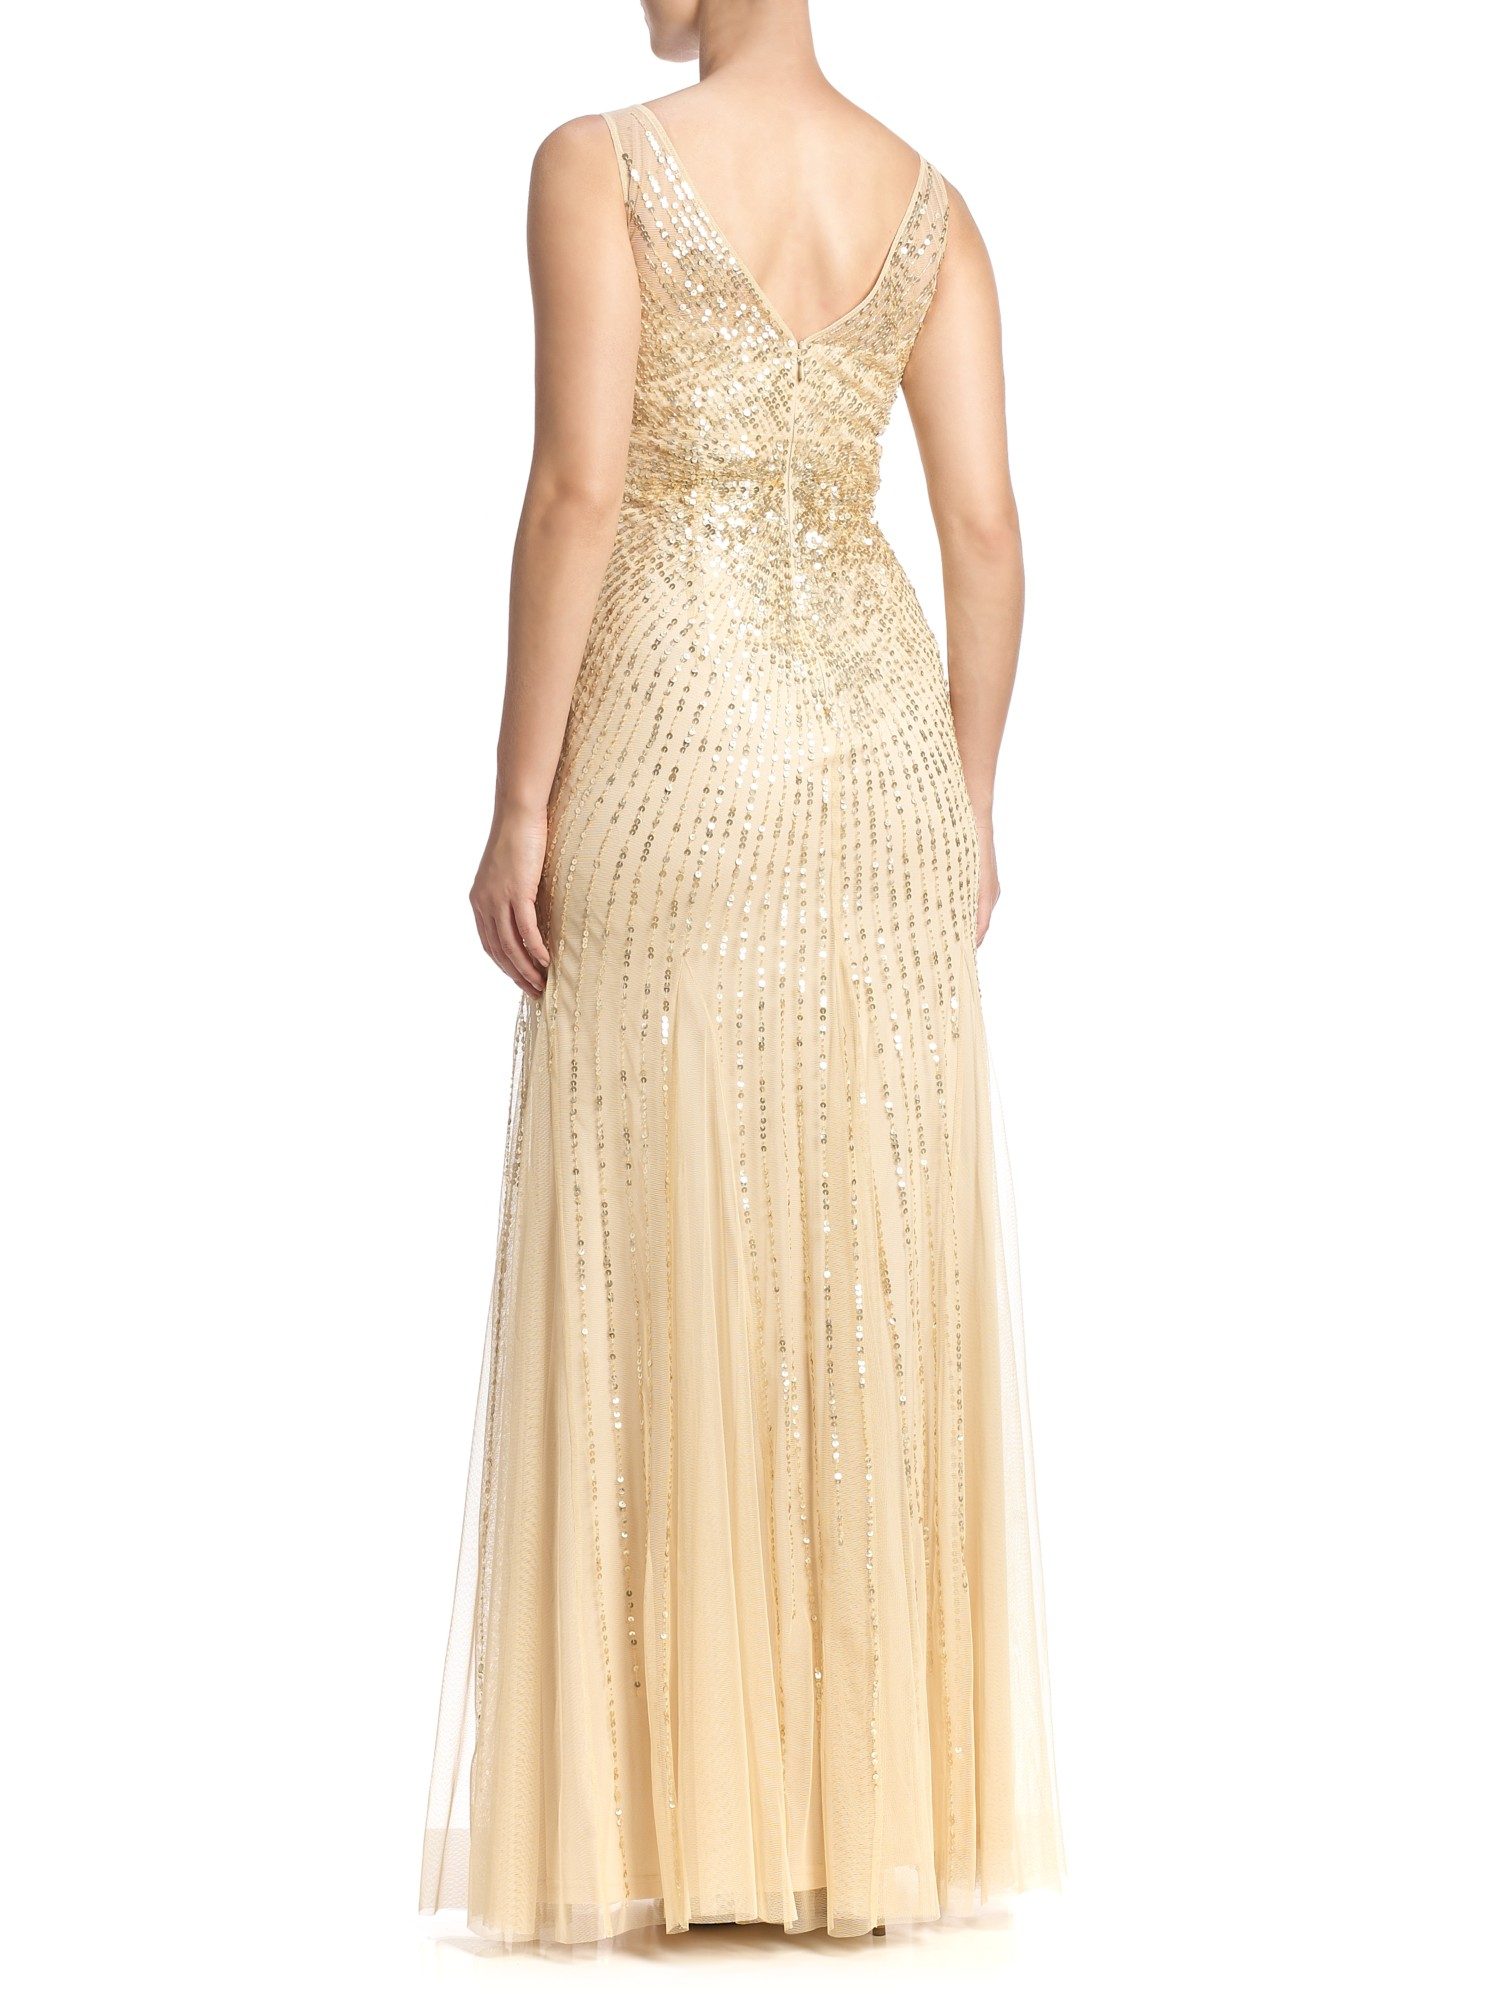 Lyst - Adrianna Papell Beaded Mesh Mermaid Gown in Metallic